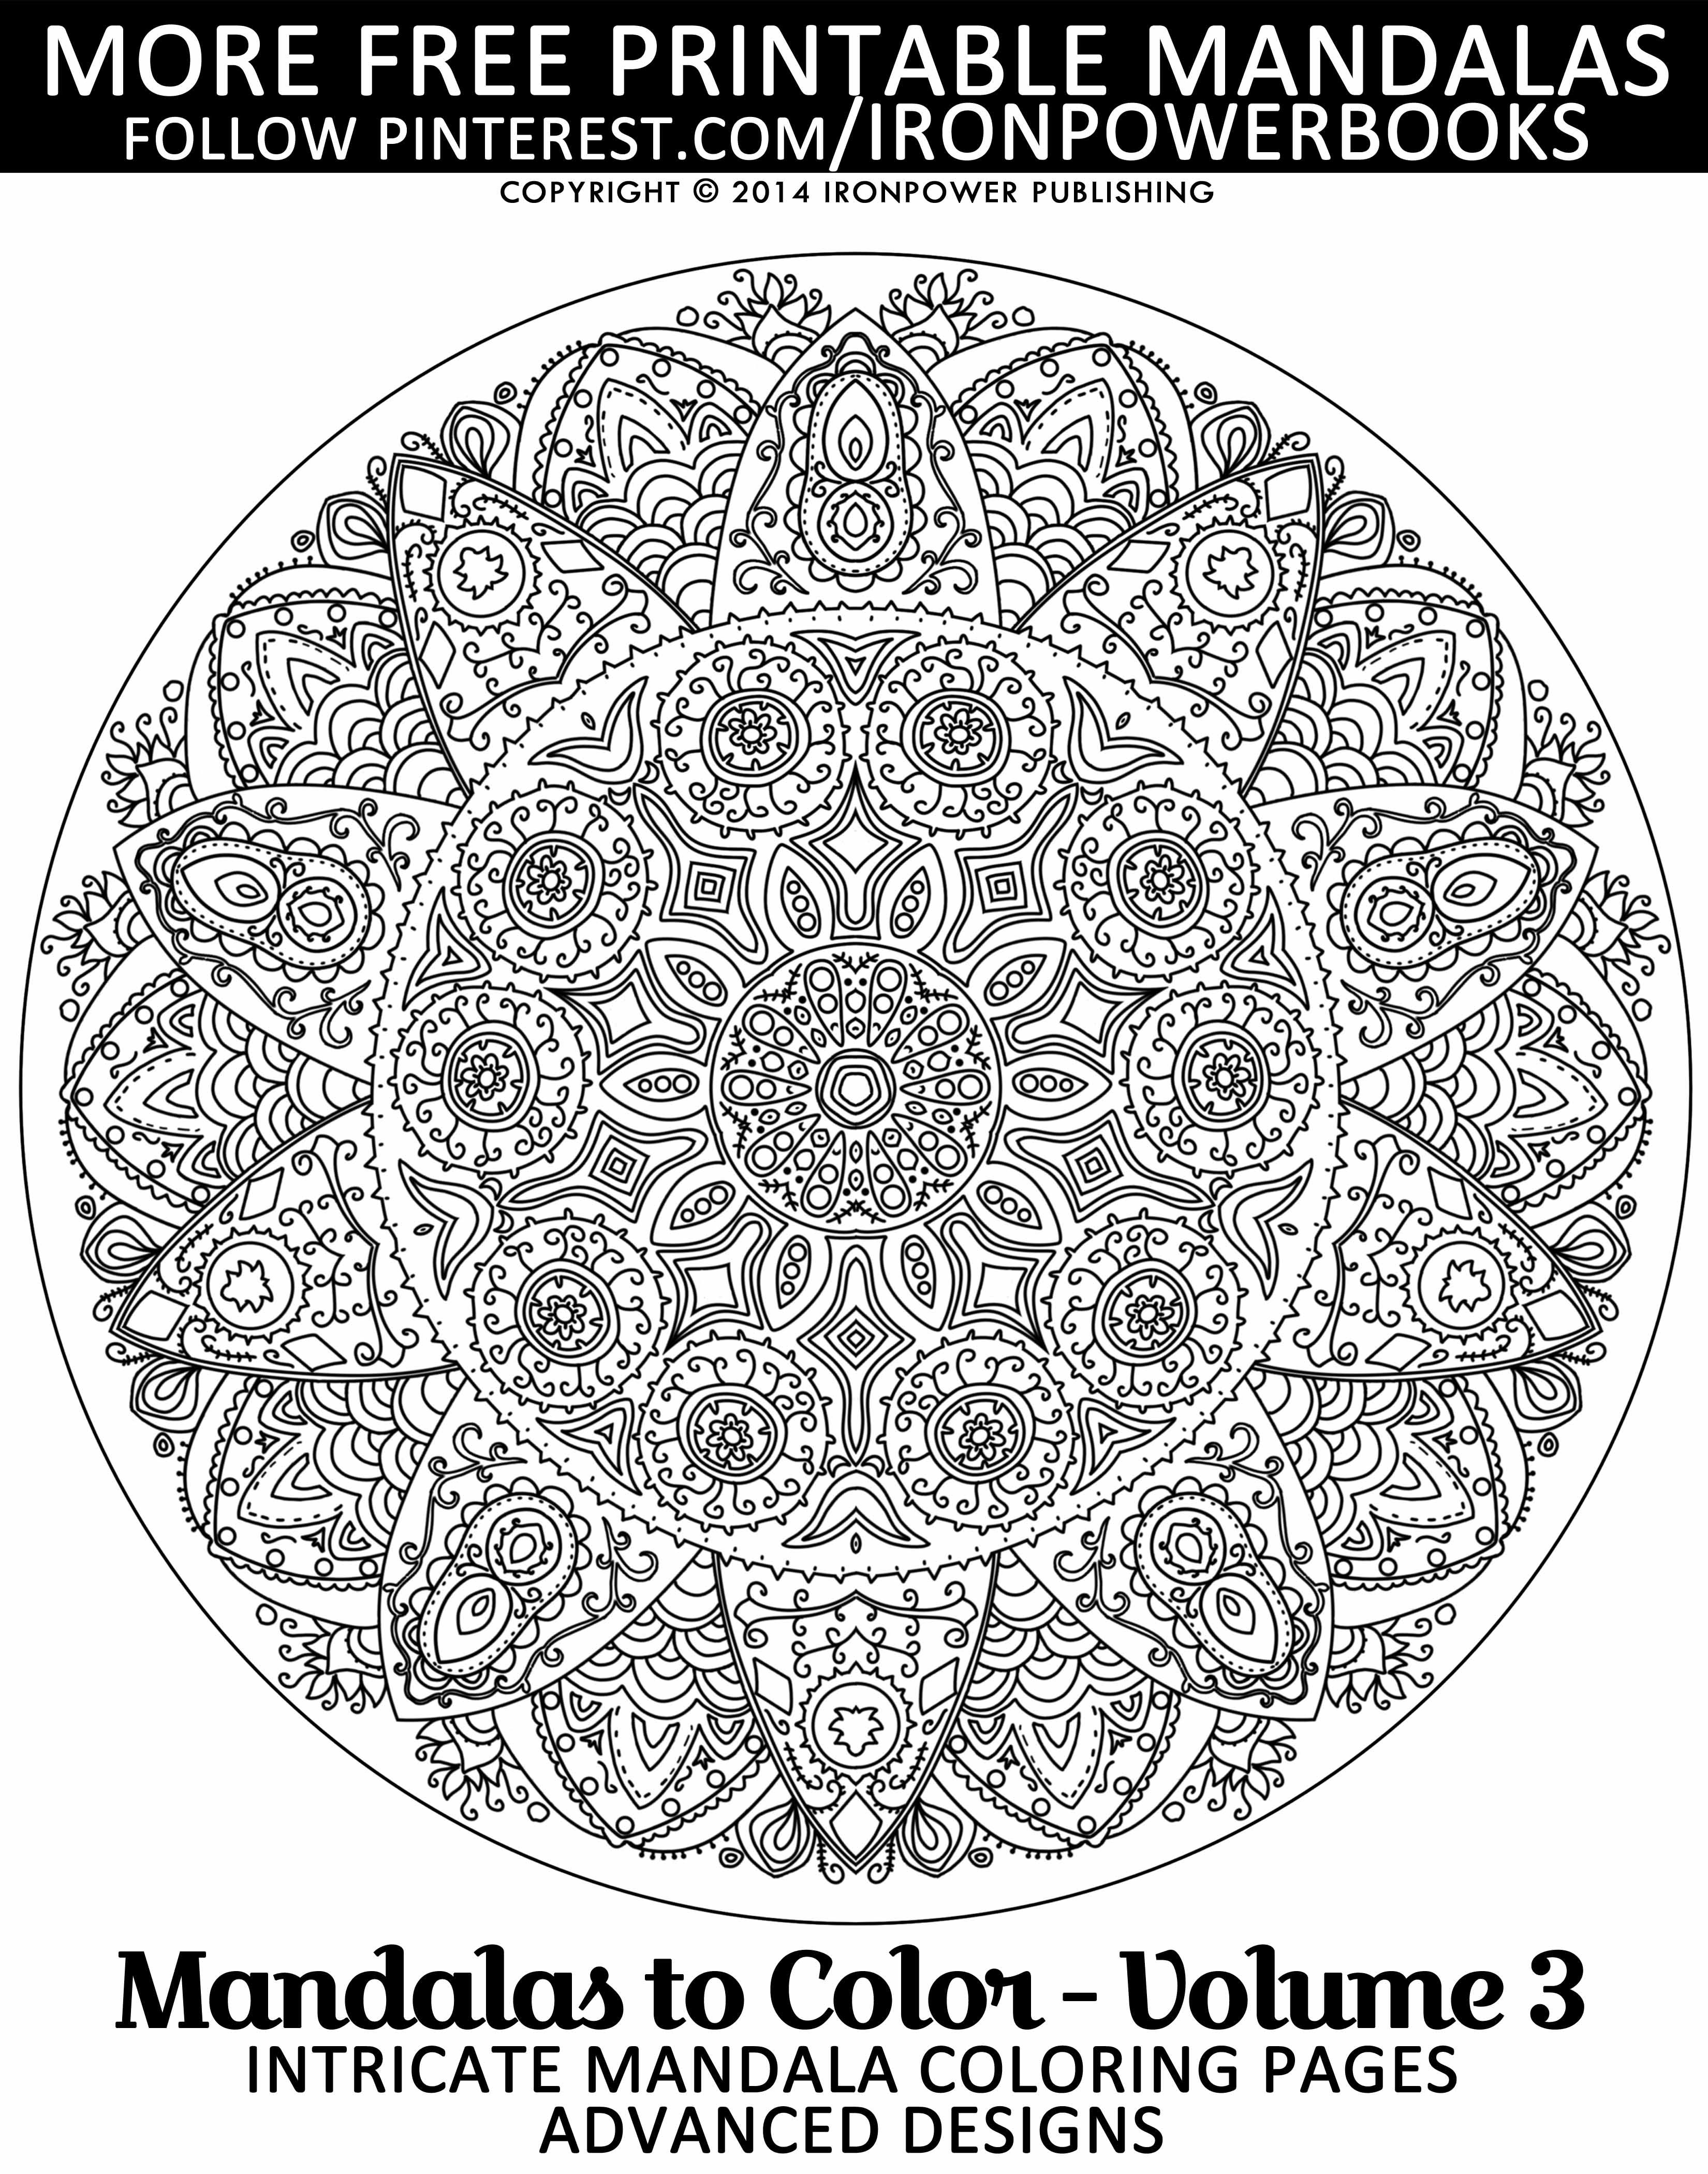 Summer mandala coloring pages - Free Printable Mandala Coloring Pages Please Use Freely For Personal Non Commercial Use